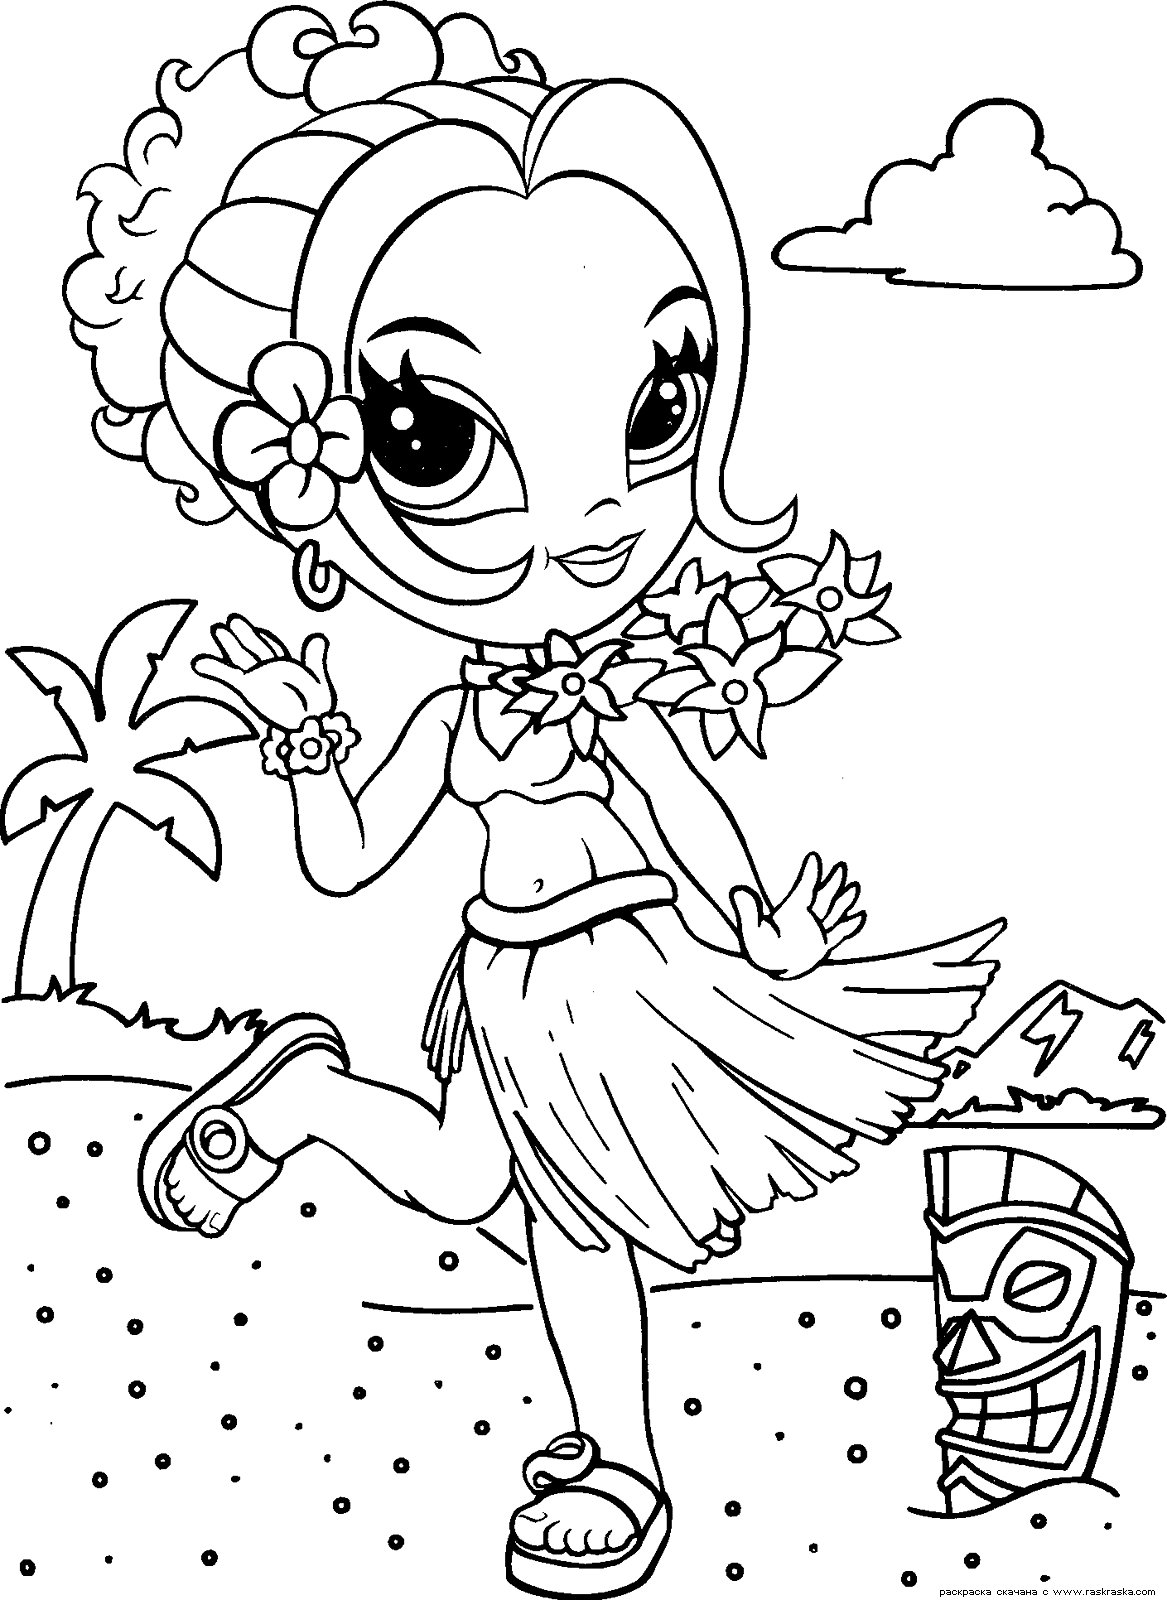 colering pages 10 toothy adult coloring pages printable off the cusp pages colering 1 2